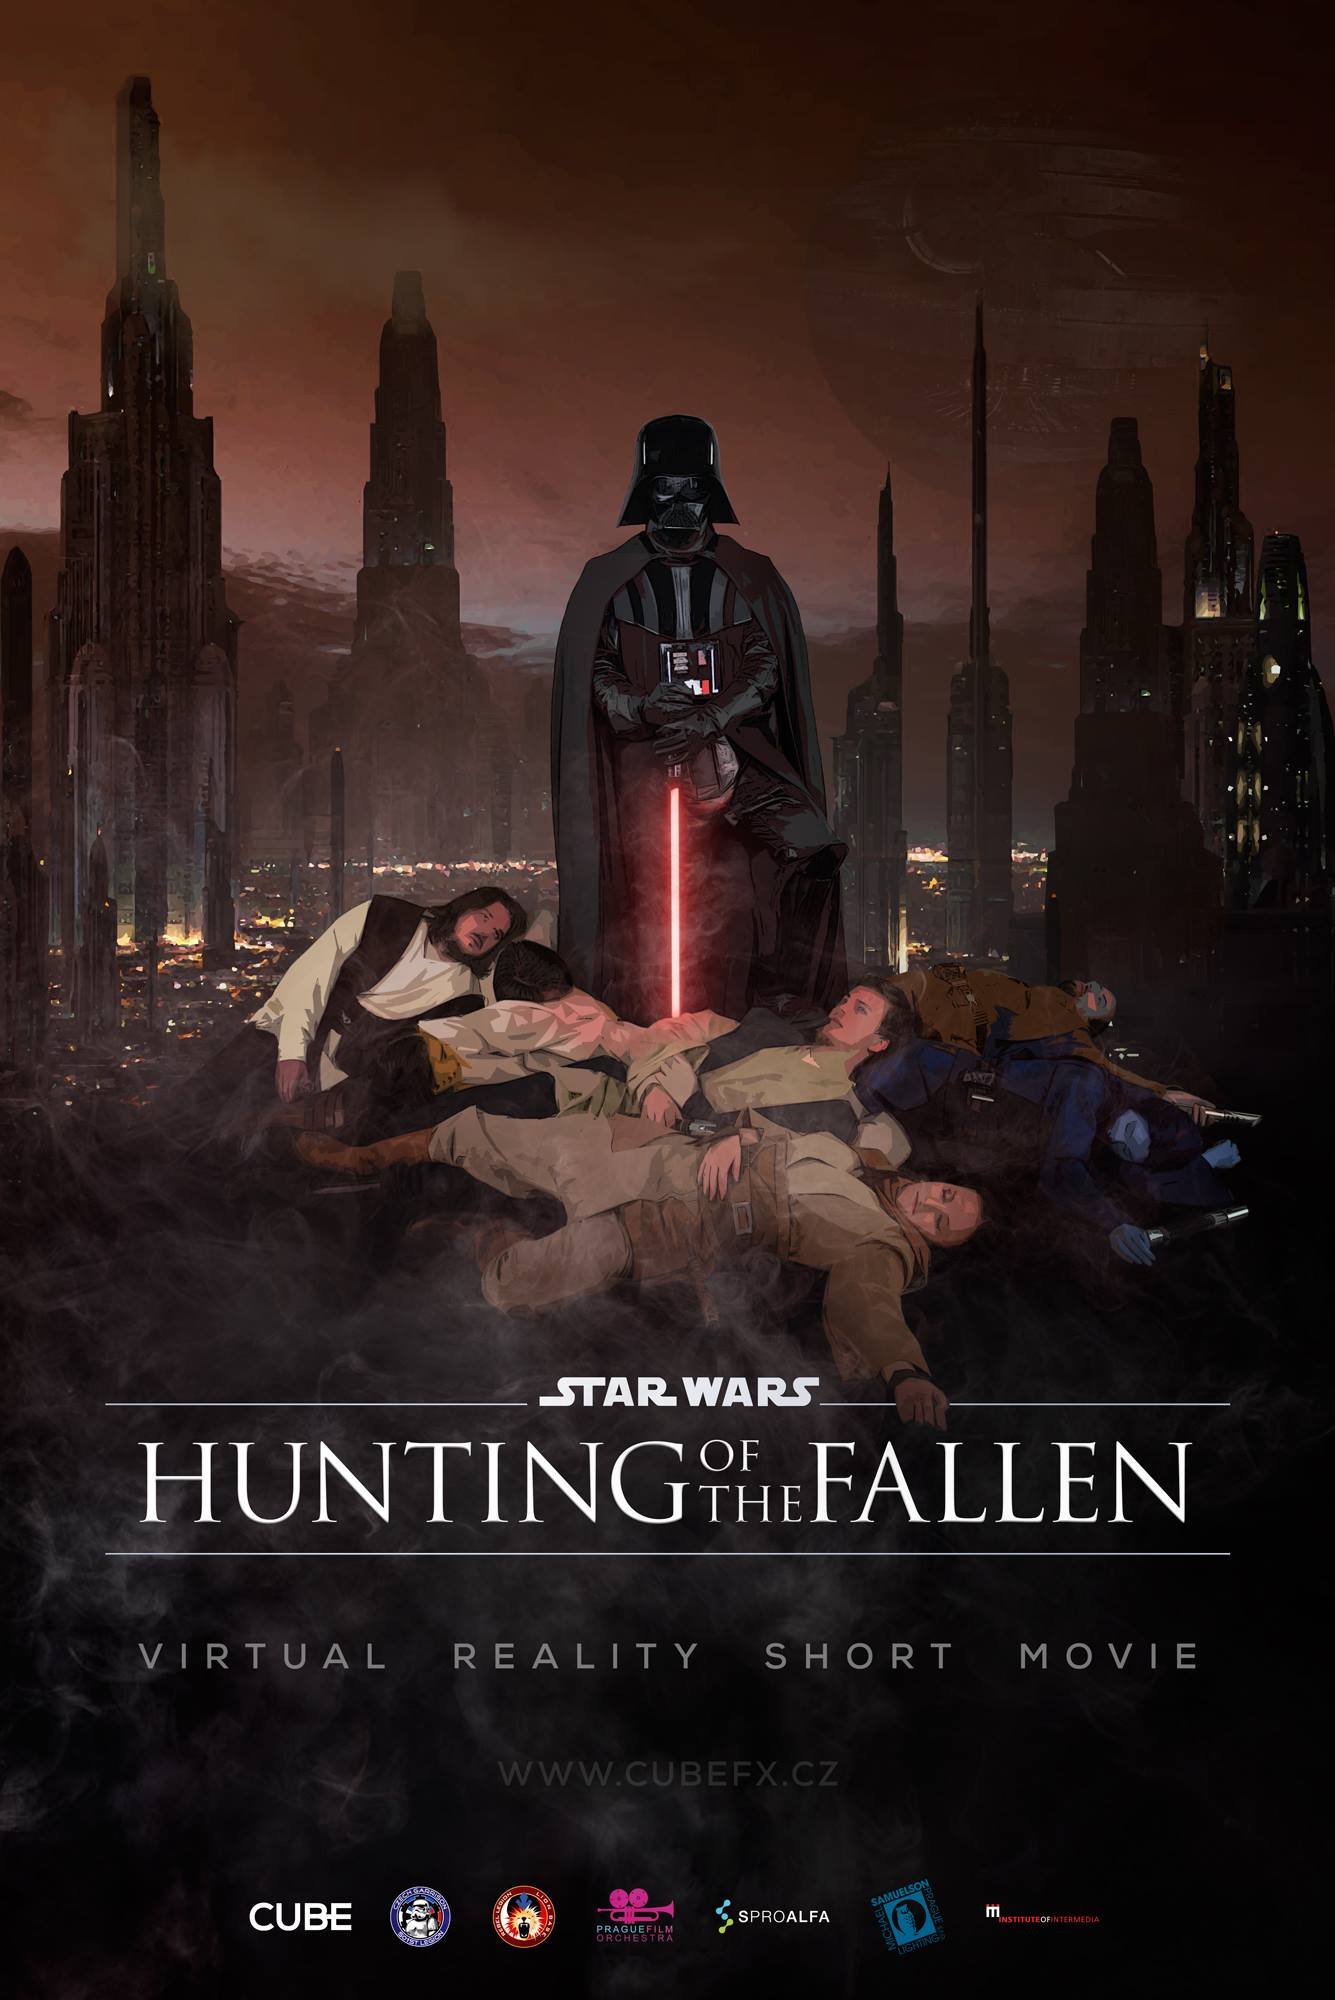 Star Wars Hunting of the Fallen [VIDEO]